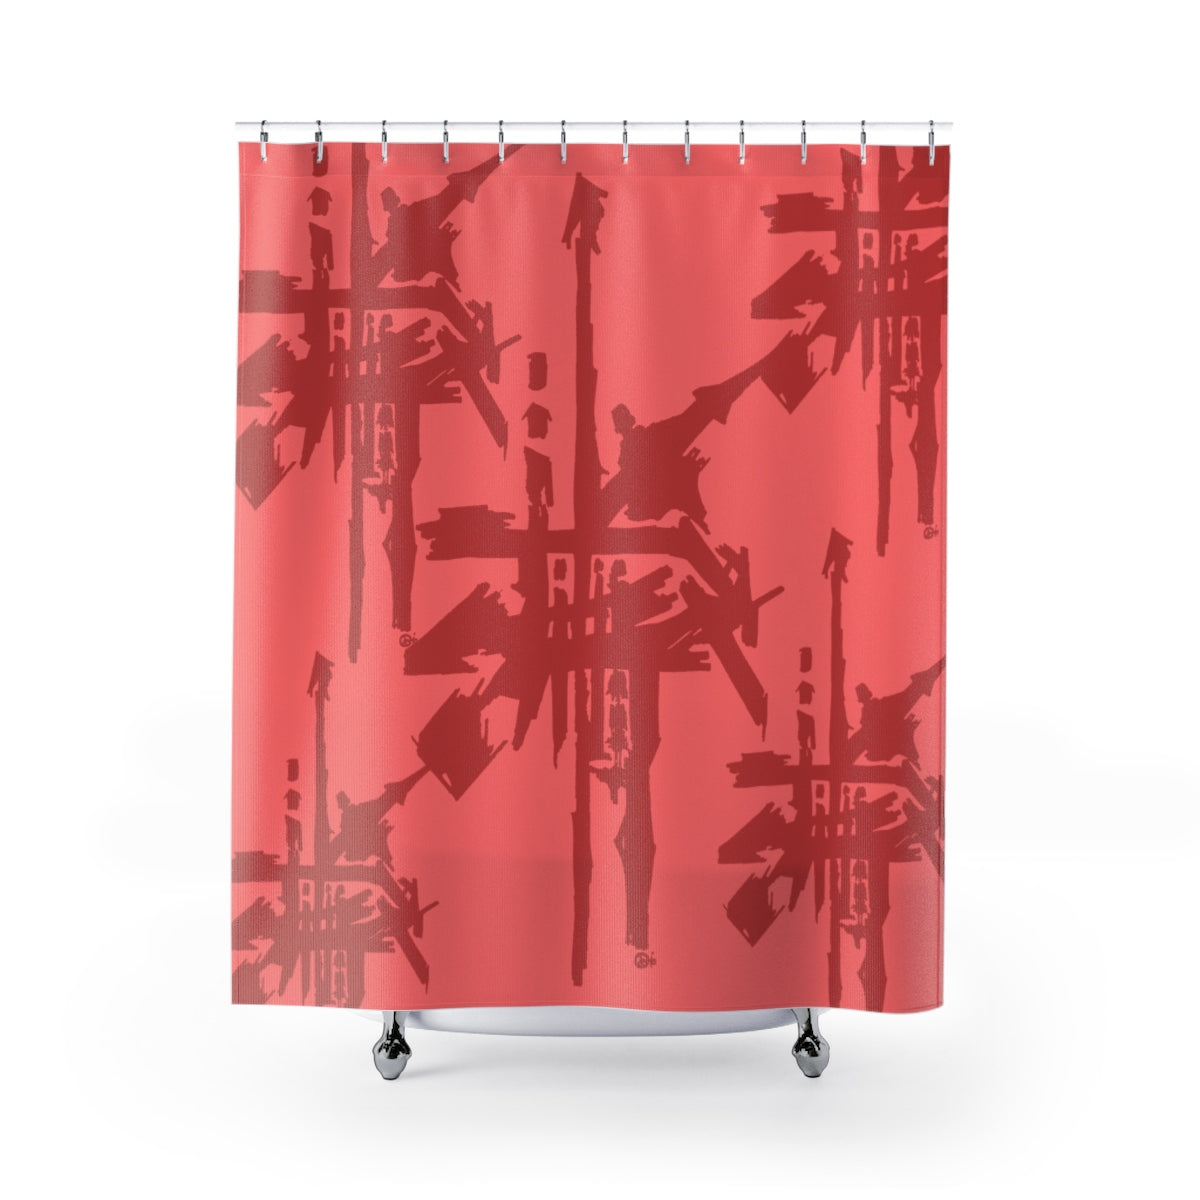 Criss Cross Sushi Shower Curtain Maroon on Salmon